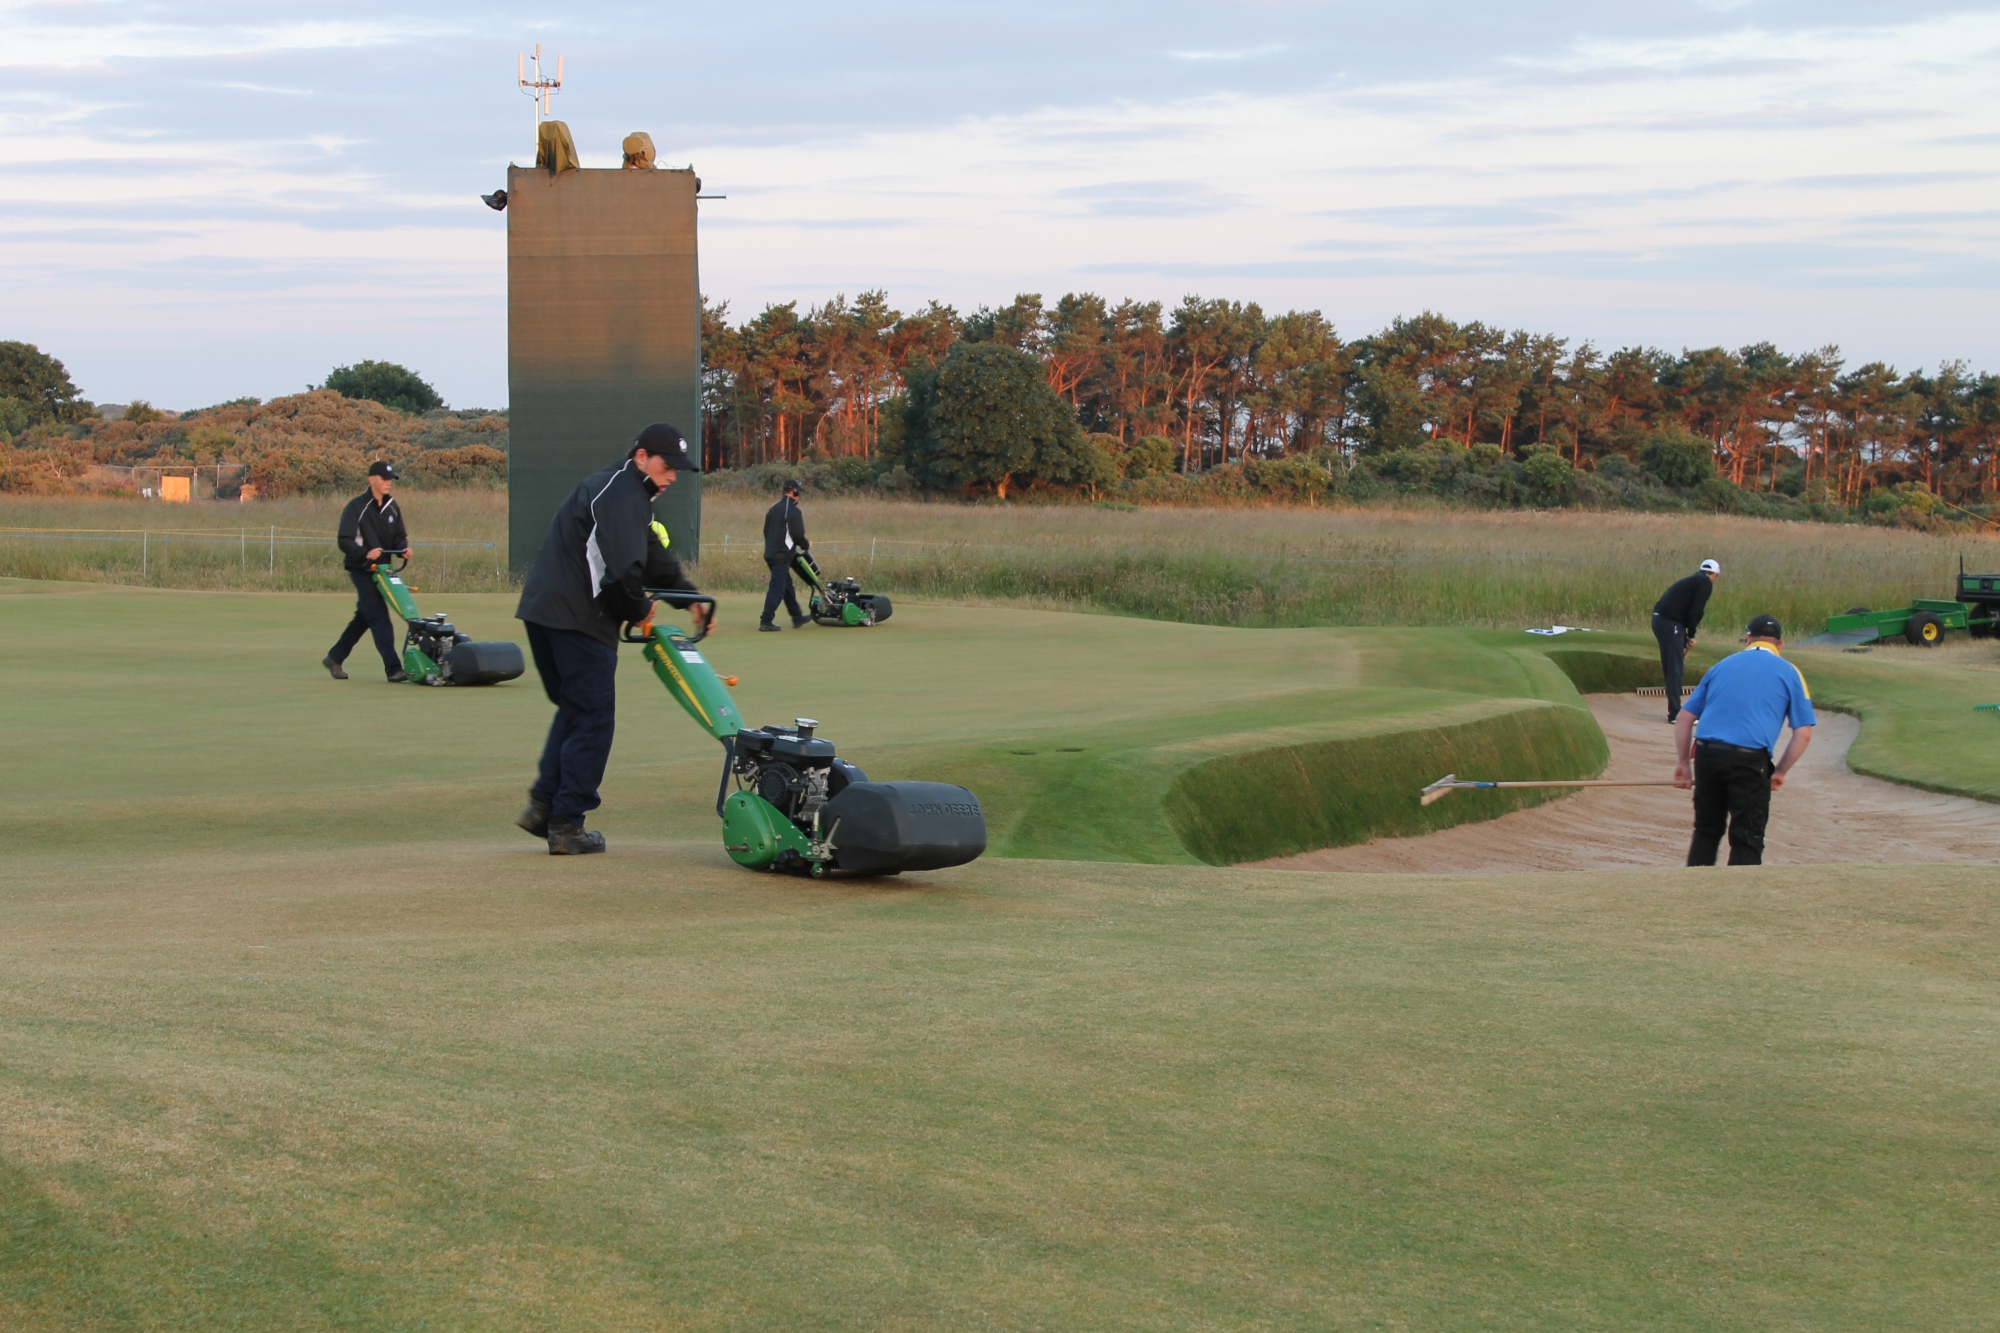 Greenkeepers mowing green and sweeping bunkers